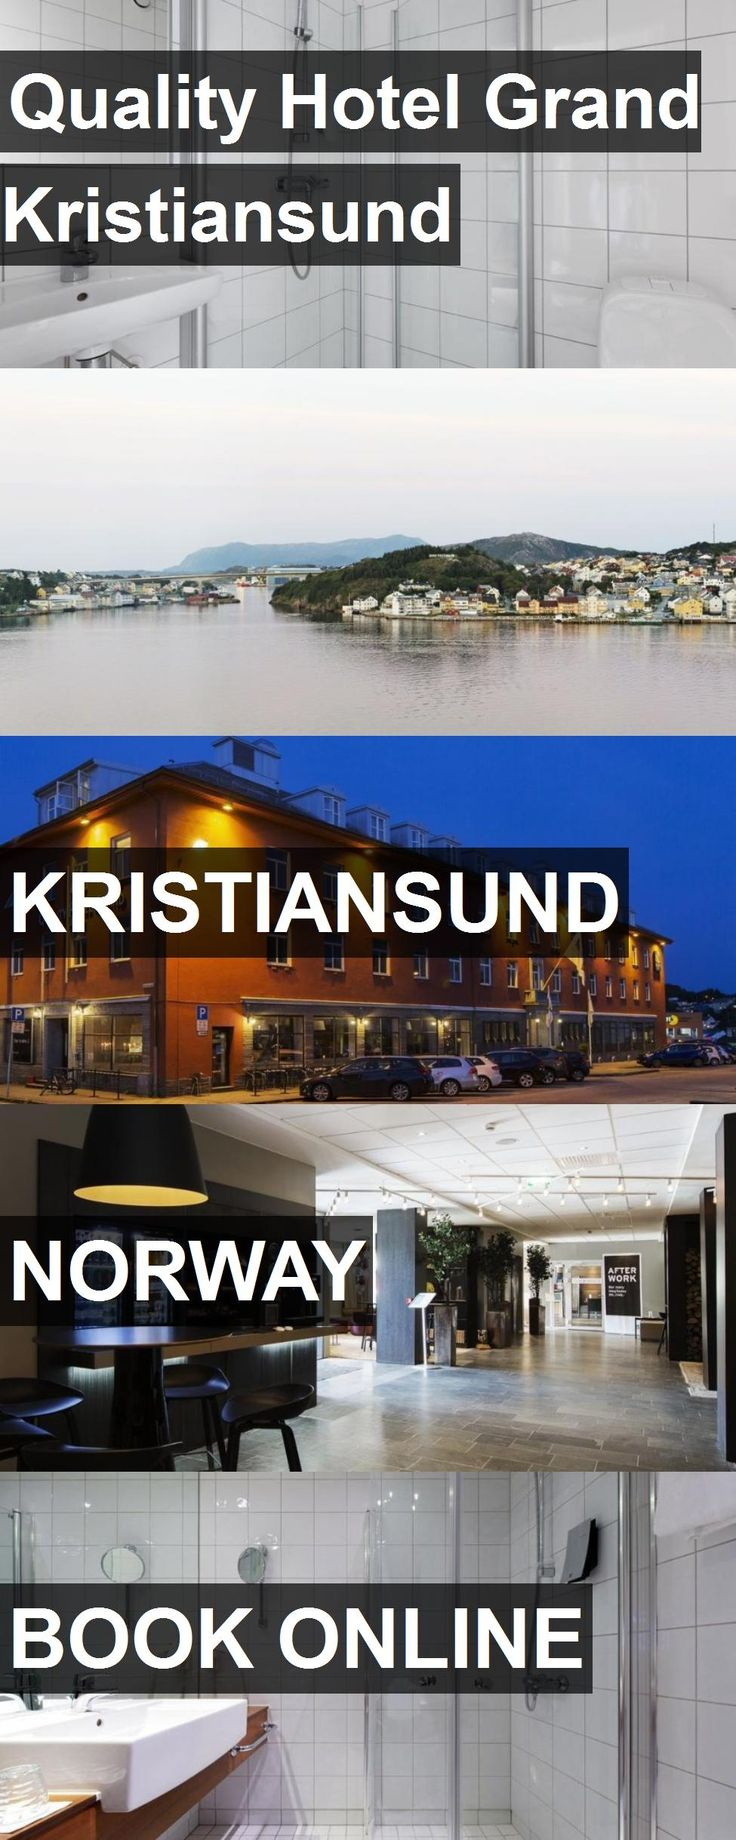 Hotel Quality Hotel Grand Kristiansund in Kristiansund, Norway. For more information, photos, reviews and best prices please follow the link. #Norway #Kristiansund #QualityHotelGrandKristiansund #hotel #travel #vacation